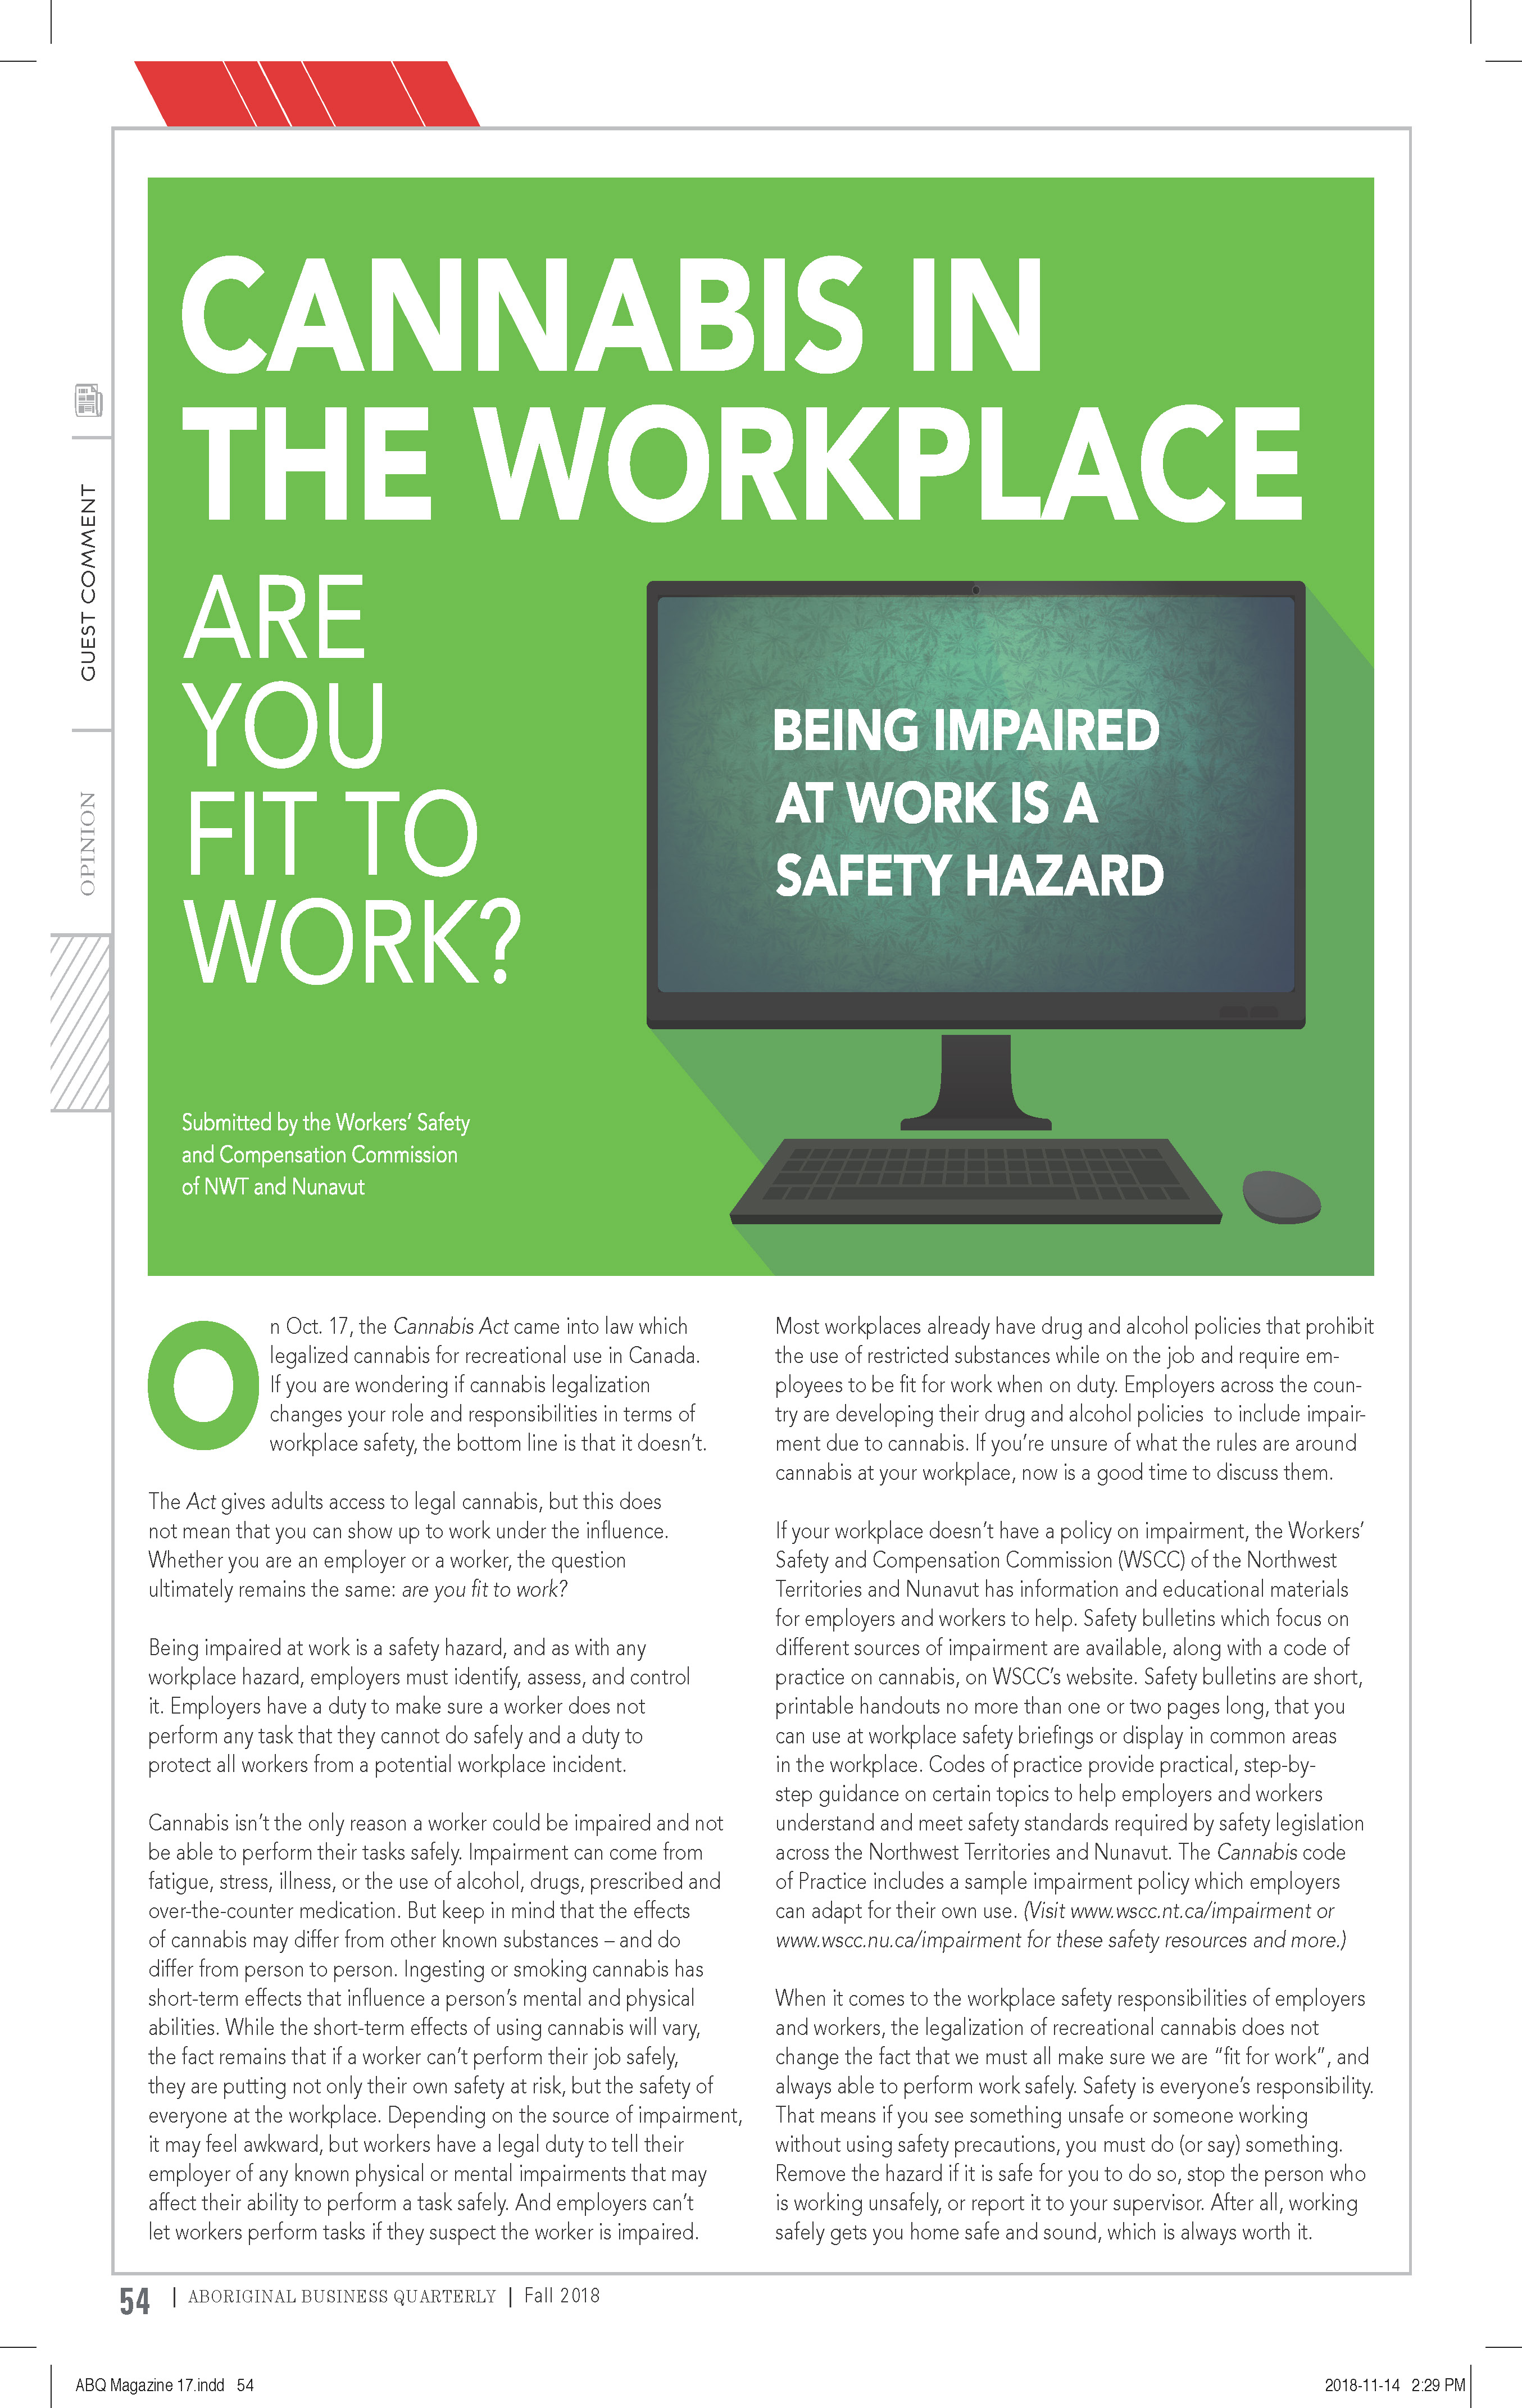 Aboriginal Business Quarterly Magazine - Fall 2018 - Page 54 - Cannabis in the Workplace